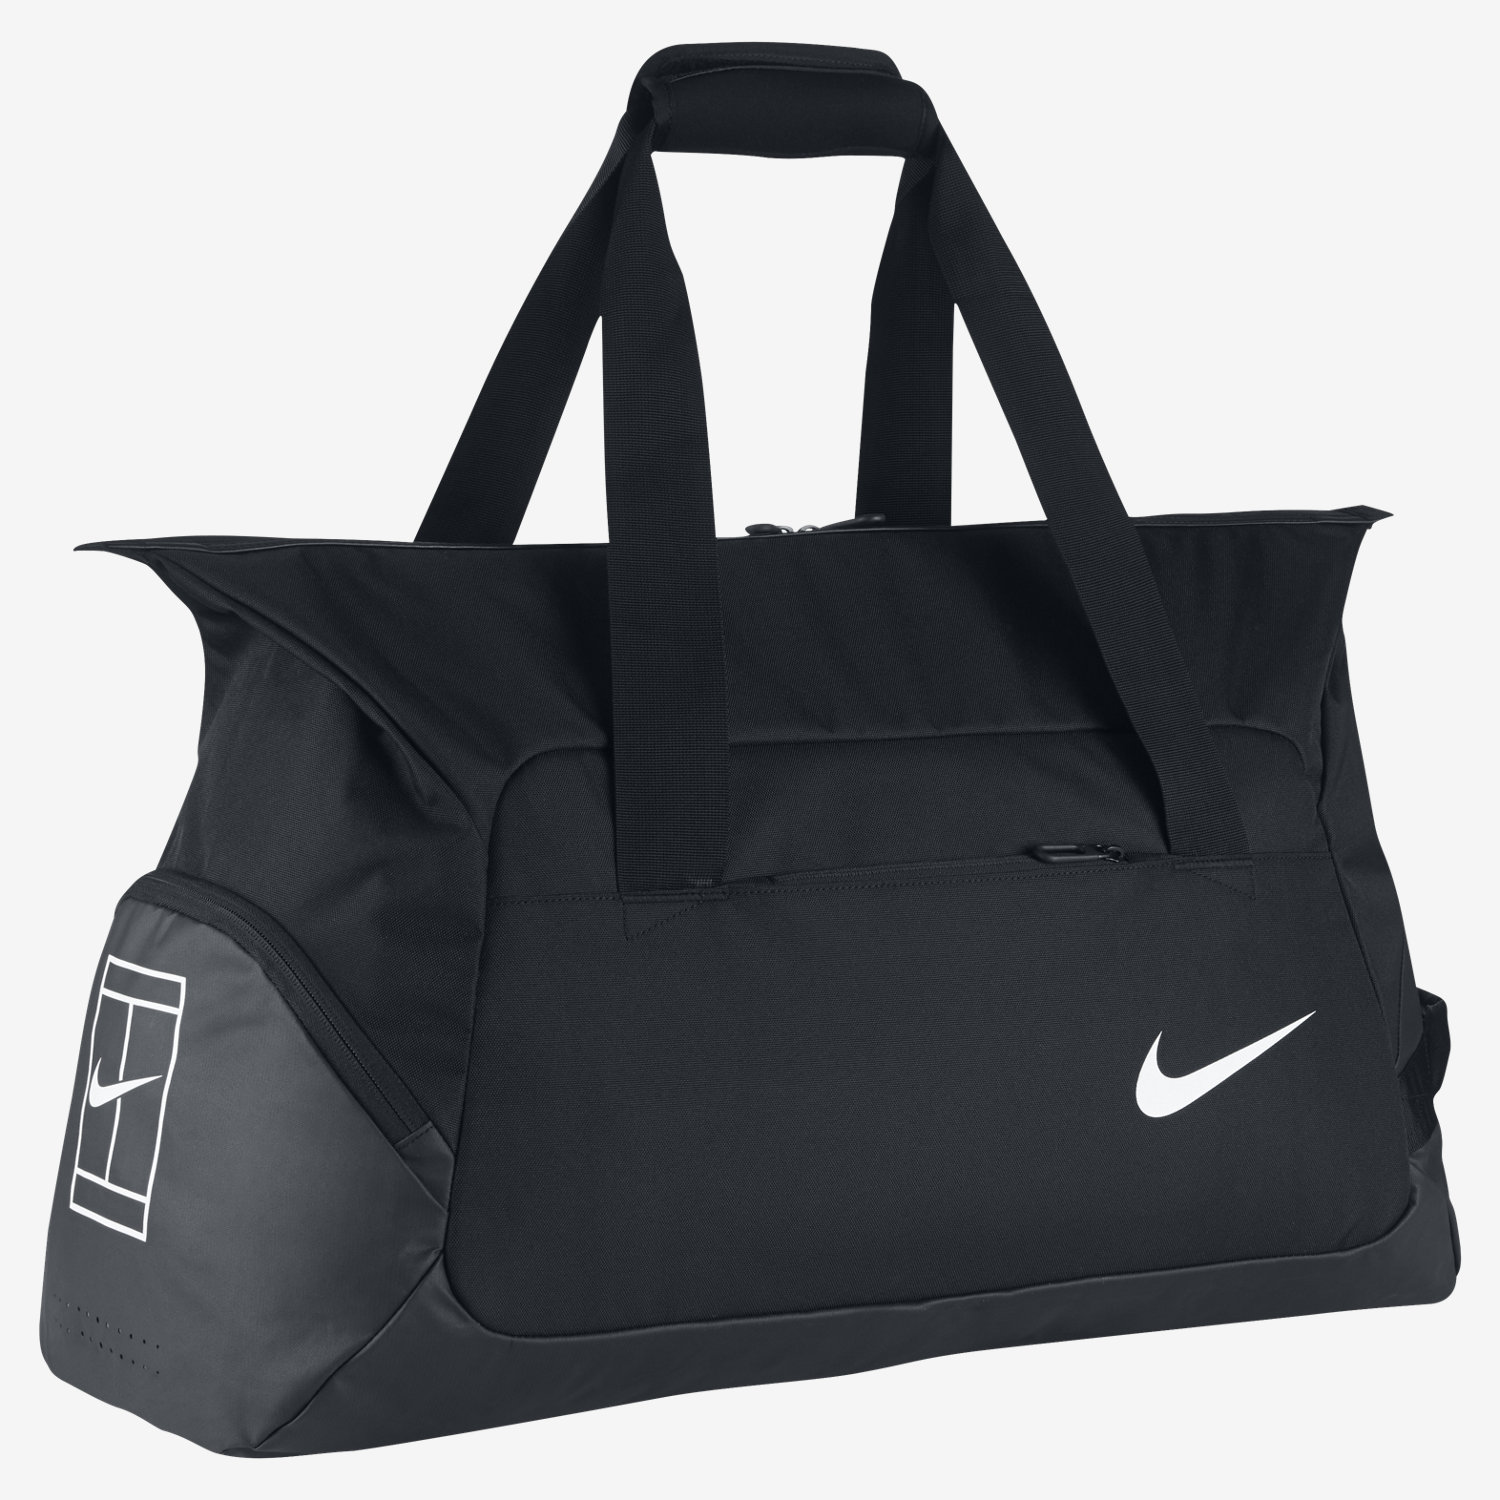 4eae5a7cdcb9 Buy nike black bag   OFF48% Discounted